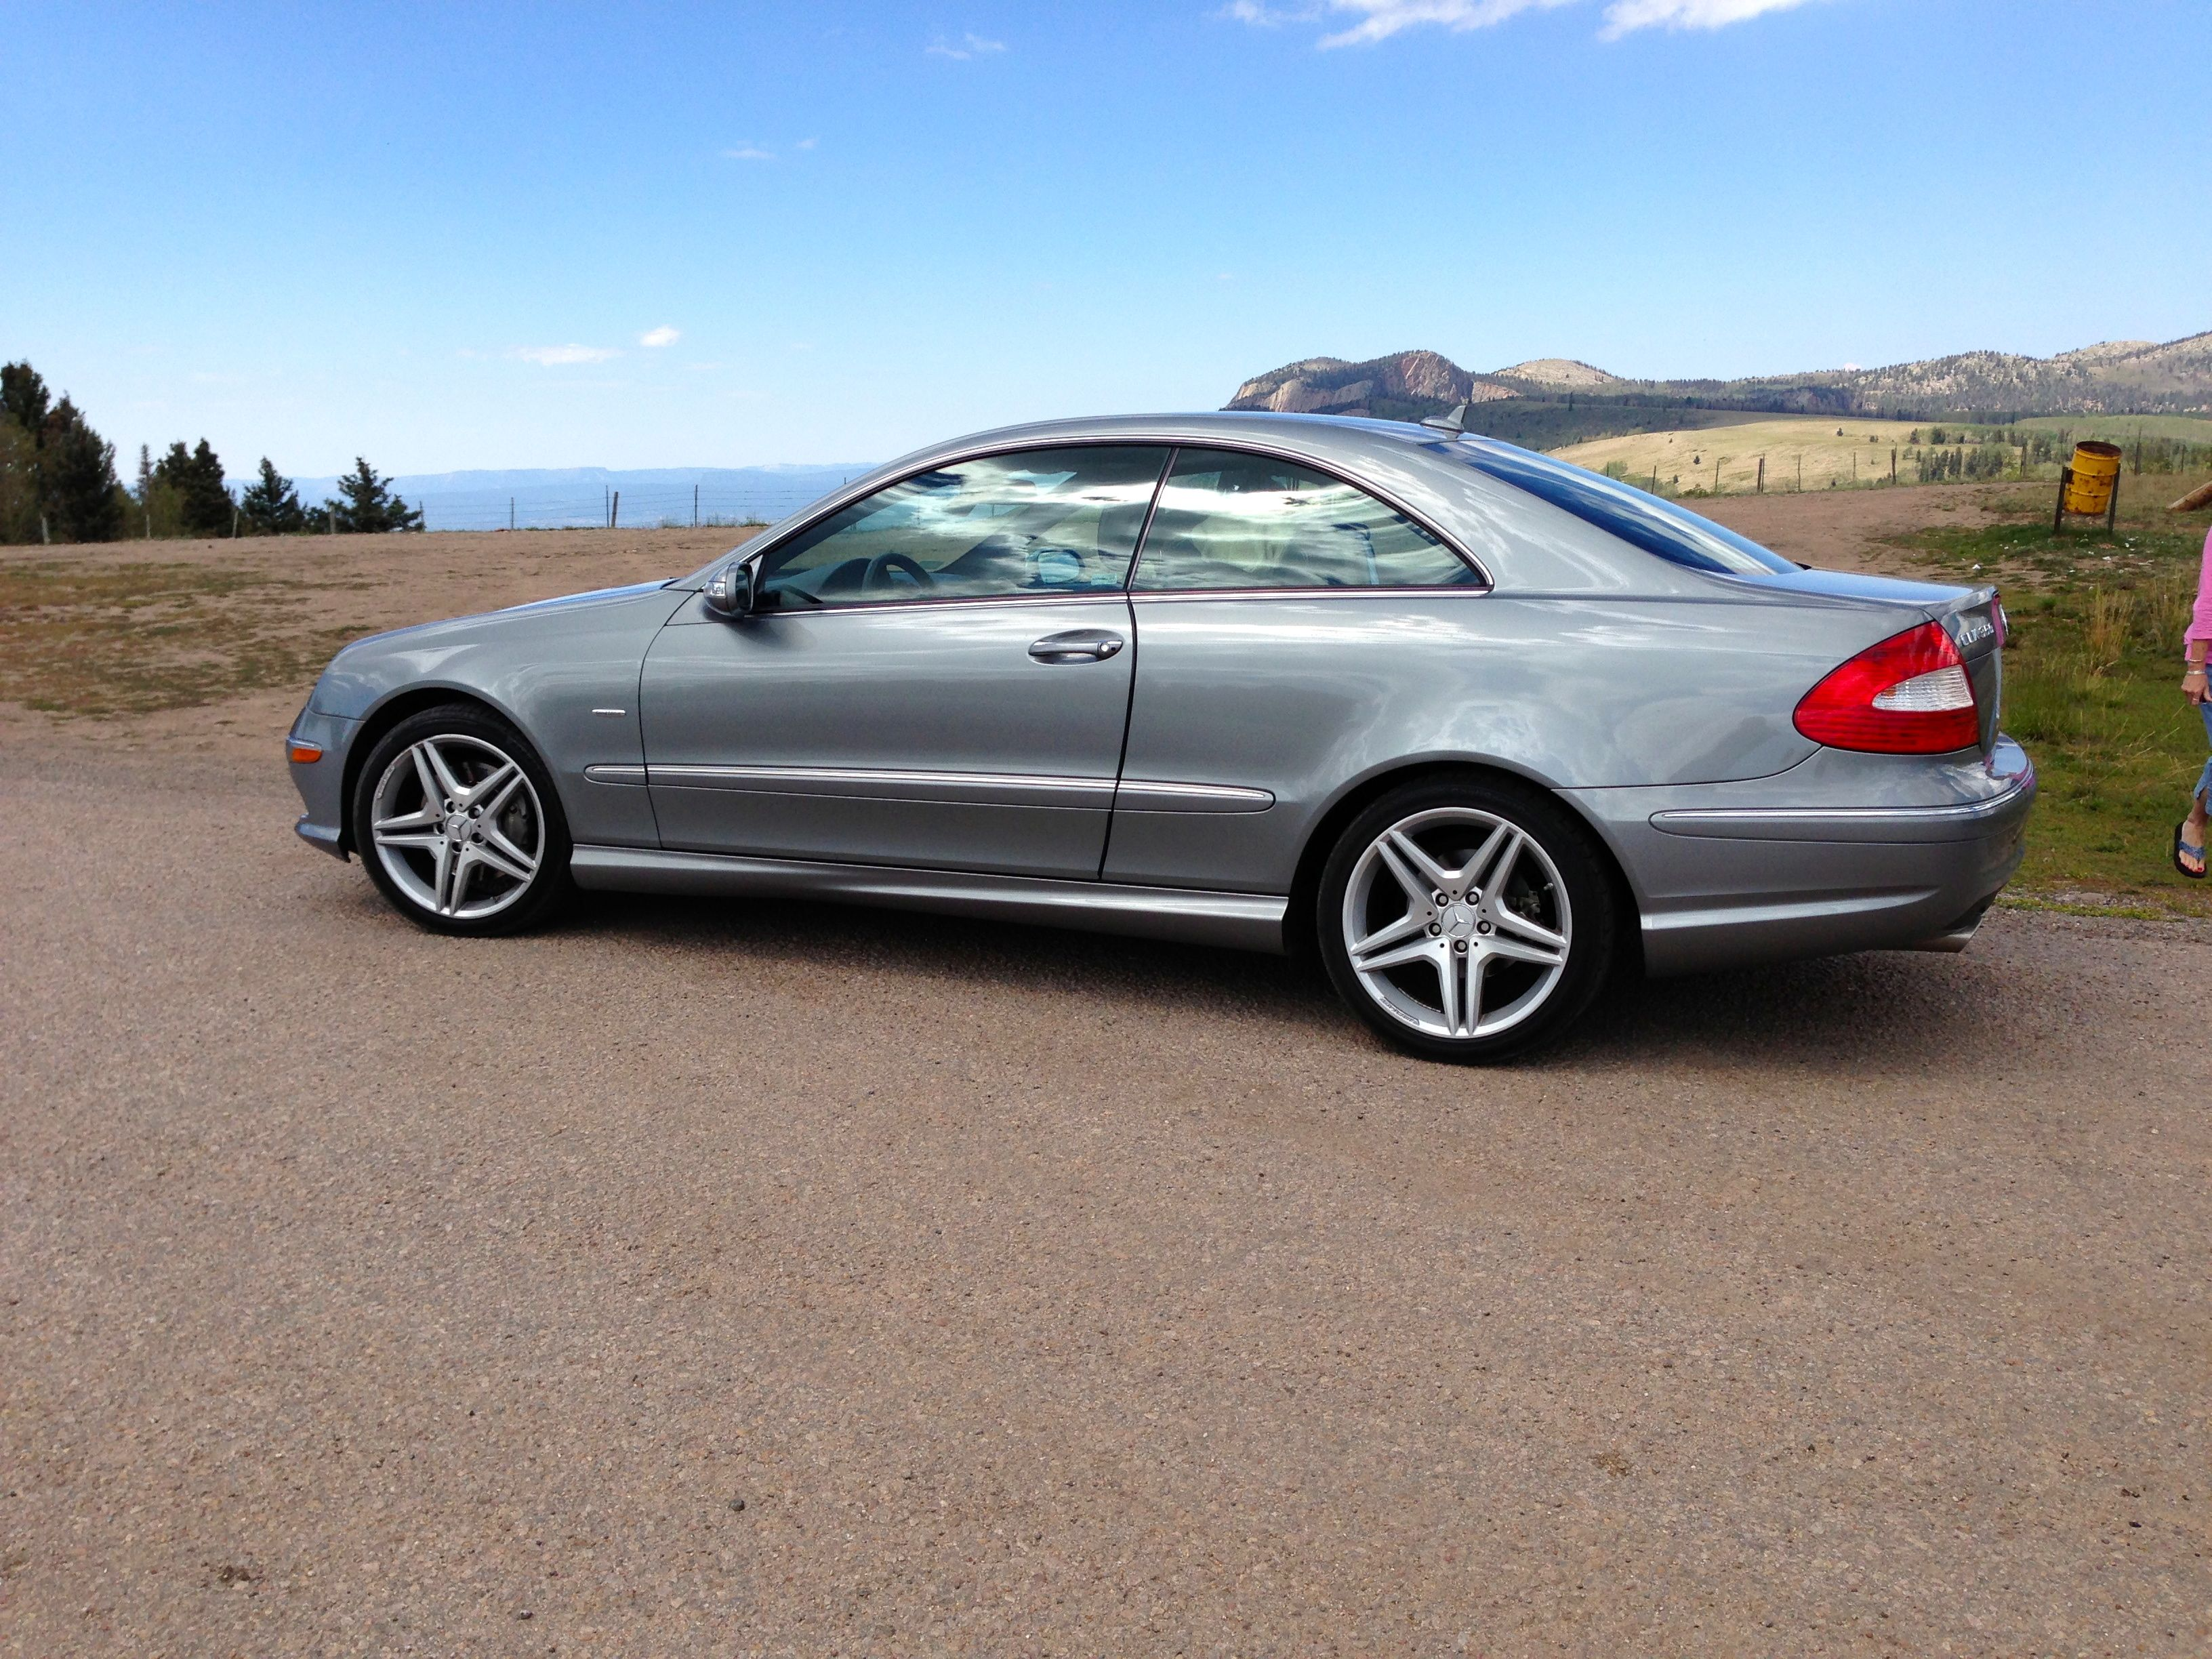 Image gallery 2013 clk 350 for Mercedes benz clk350 price